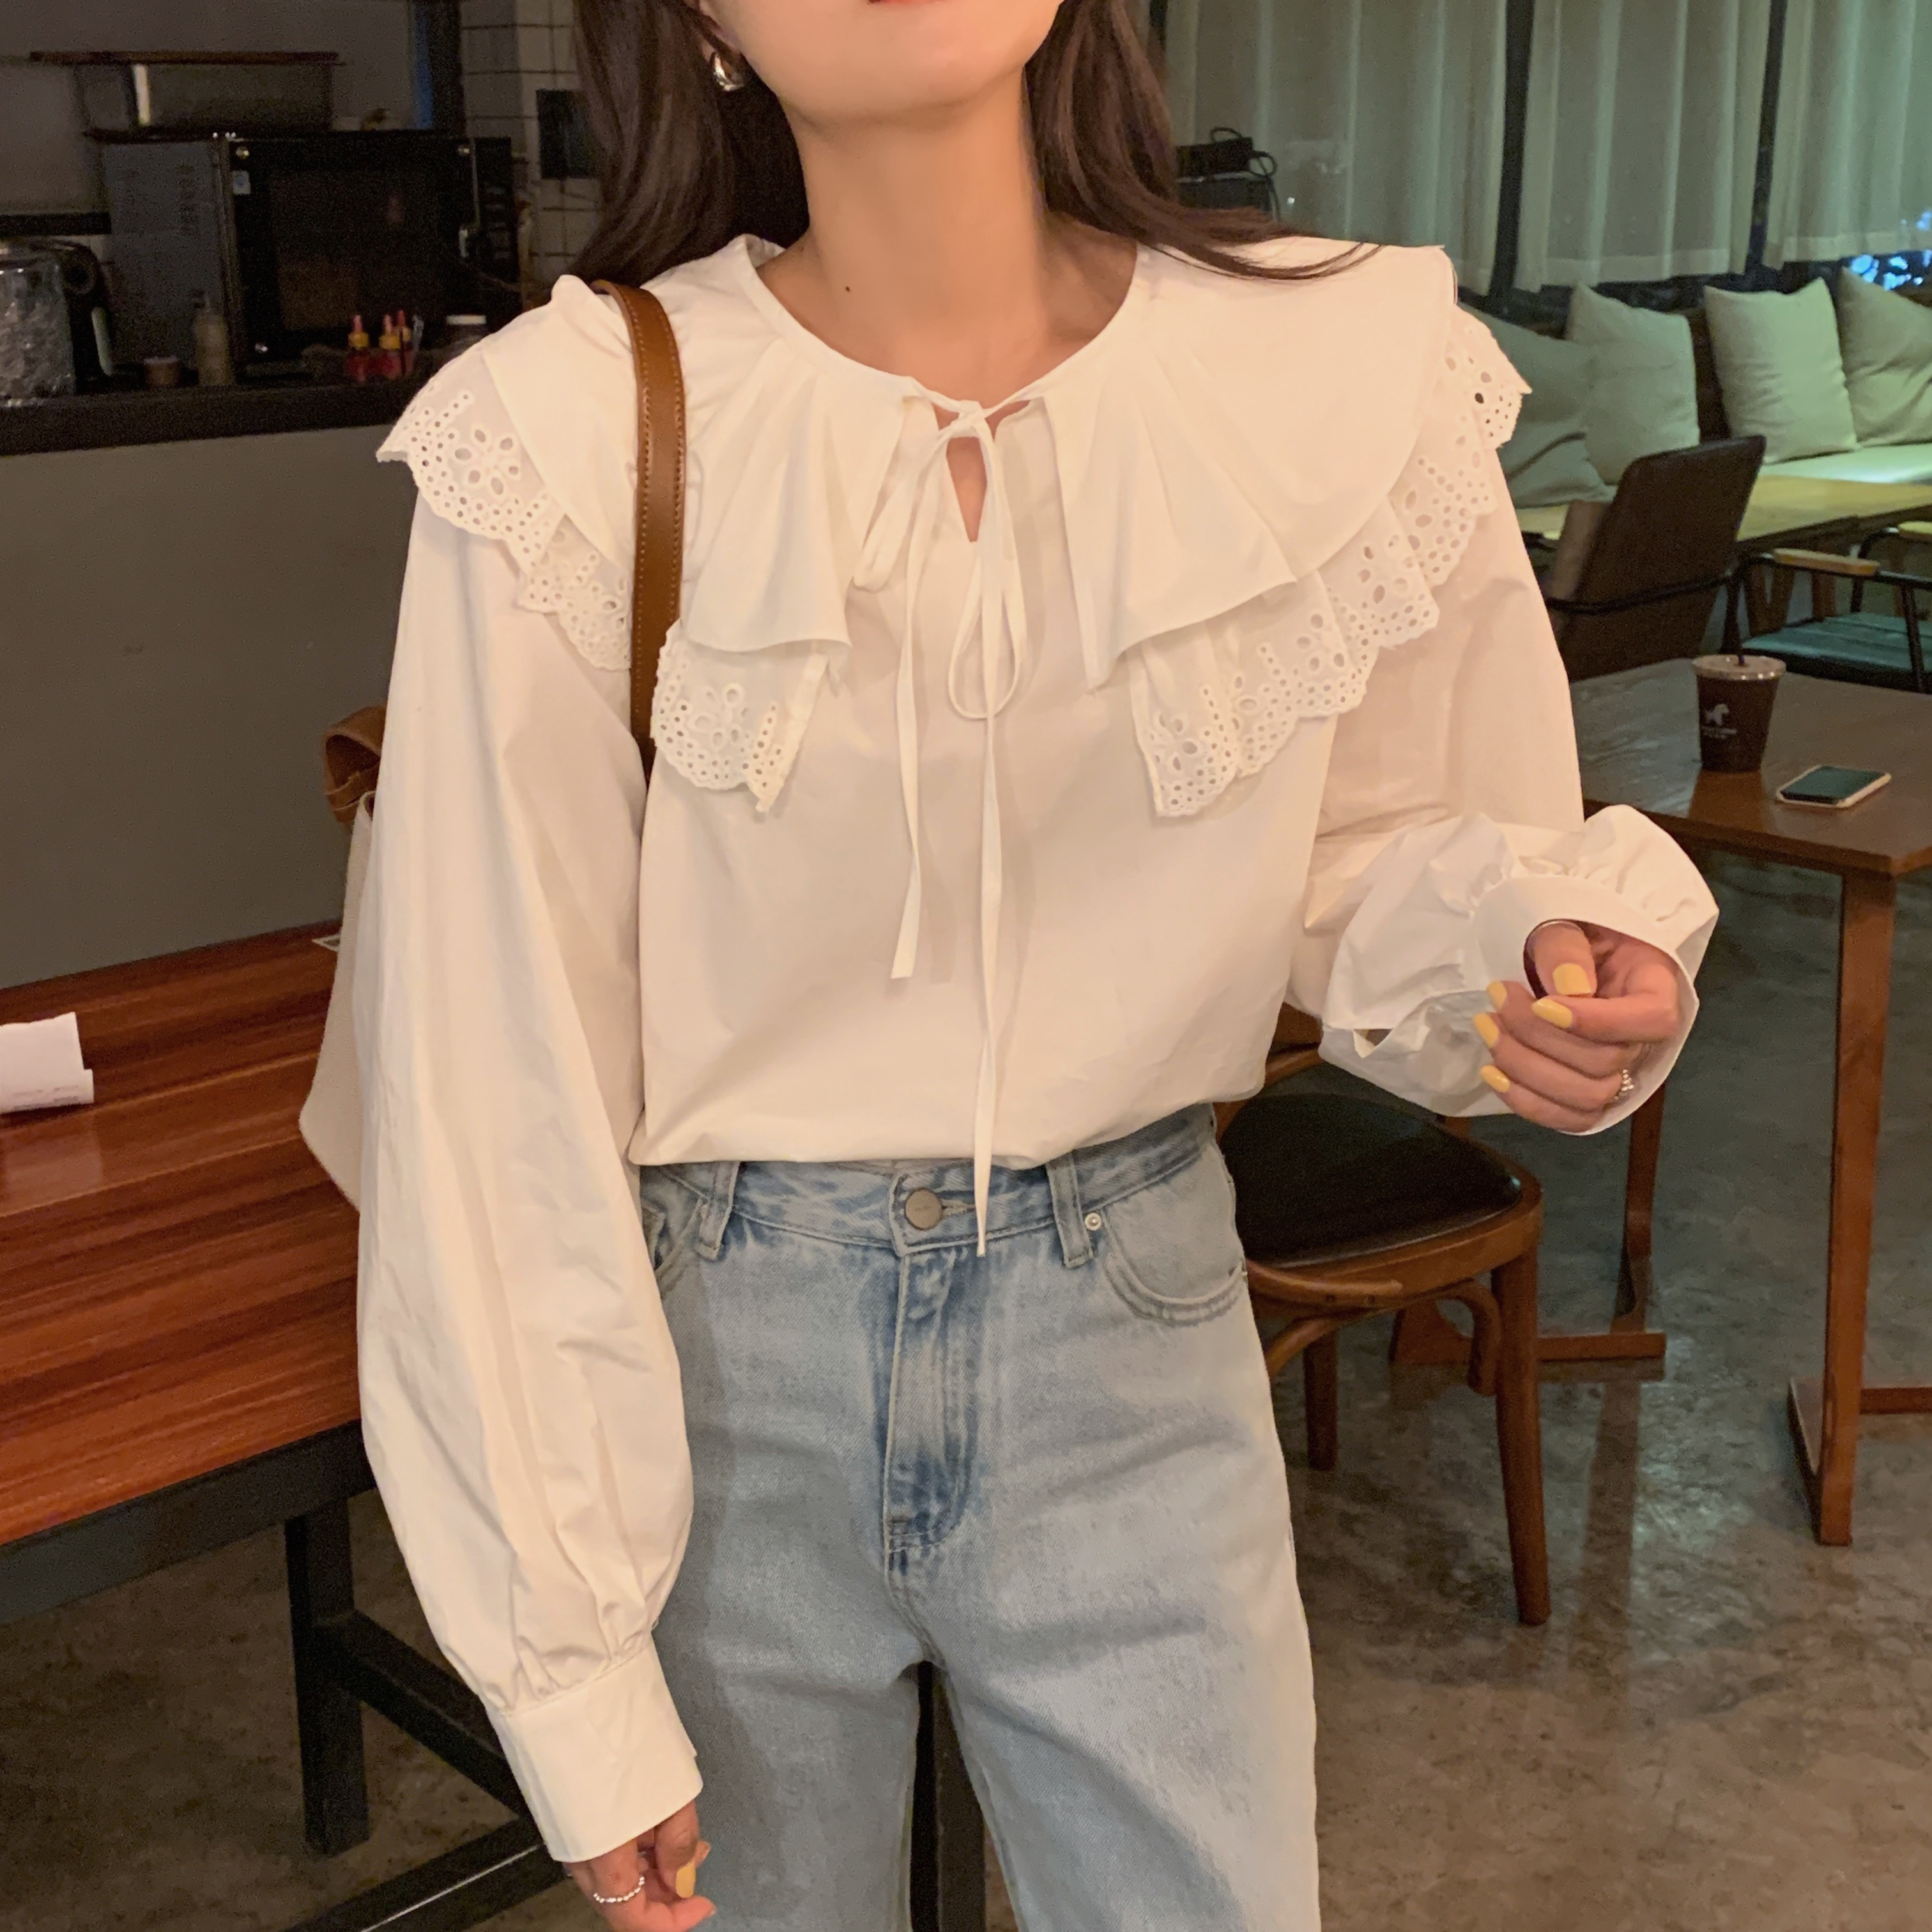 H85fbc449f74e4ebfbe05ca65cbcb936di - Spring / Autumn Korean Lace-Up Hollow Out Collar Long Sleeves Loose Solid Blouse